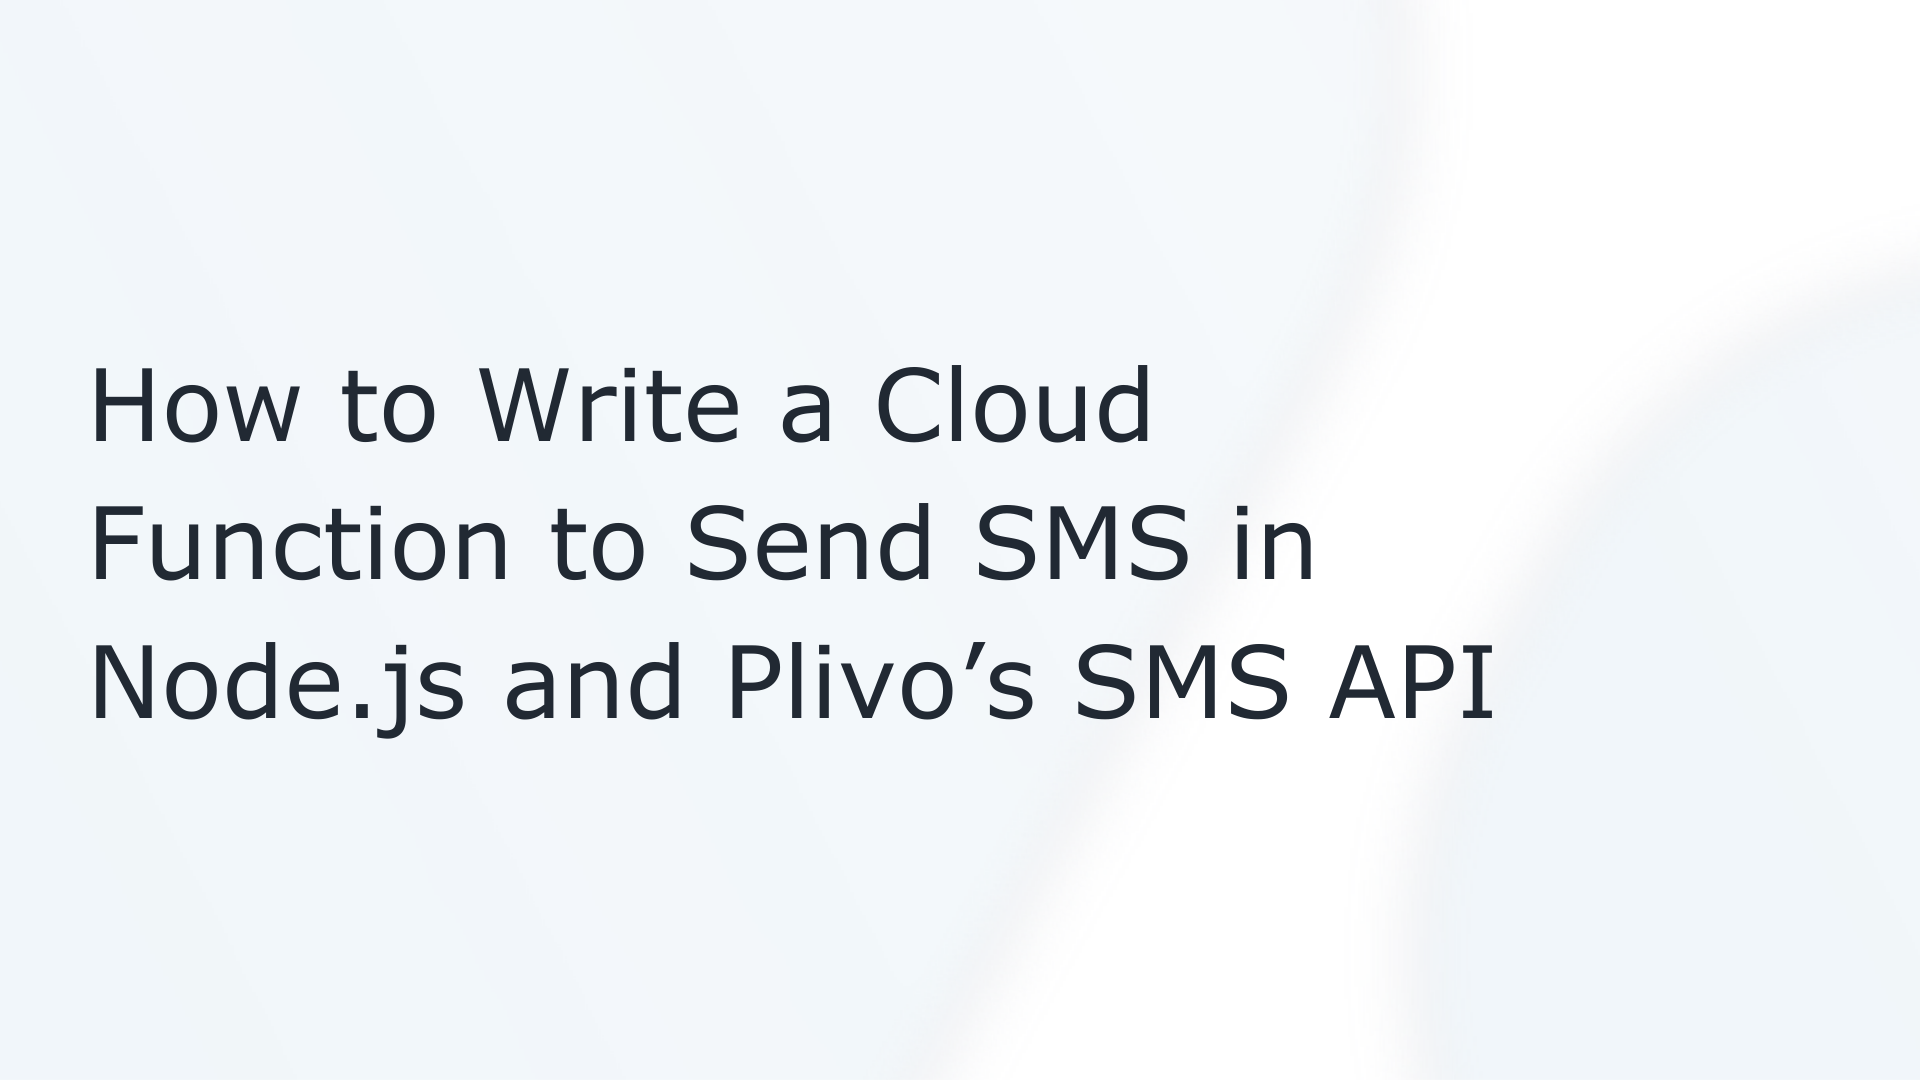 How to Write a Cloud Function to Send SMS in Node.js and Plivo's SMS API